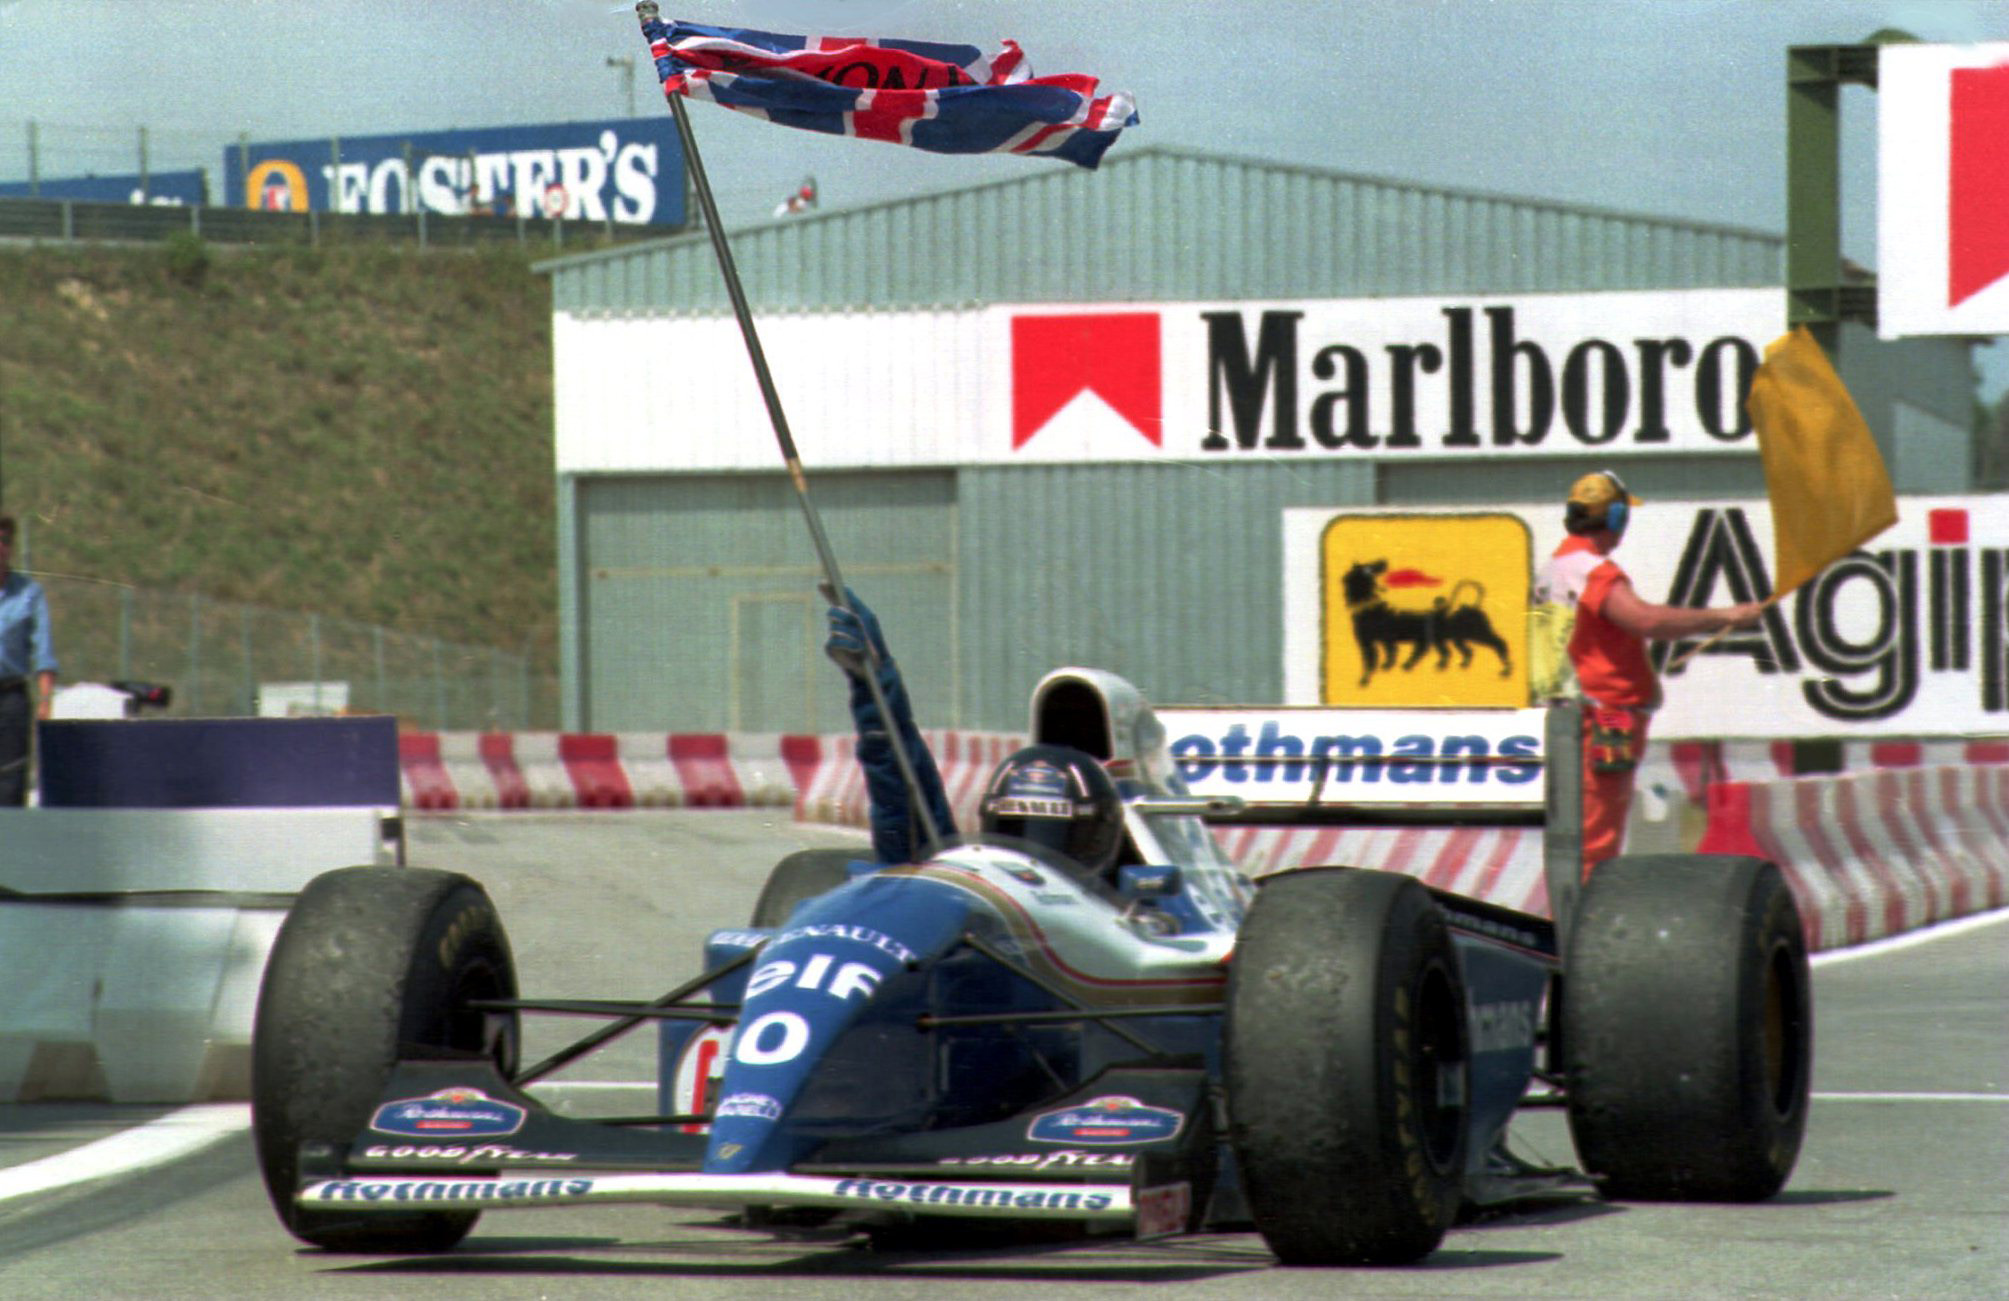 Damon-Hill-waves-the-Union-Flag-after-winning-the-1994-F1-Spanish-Grand-Prix-at-Barcelona-for-Williams-Renault